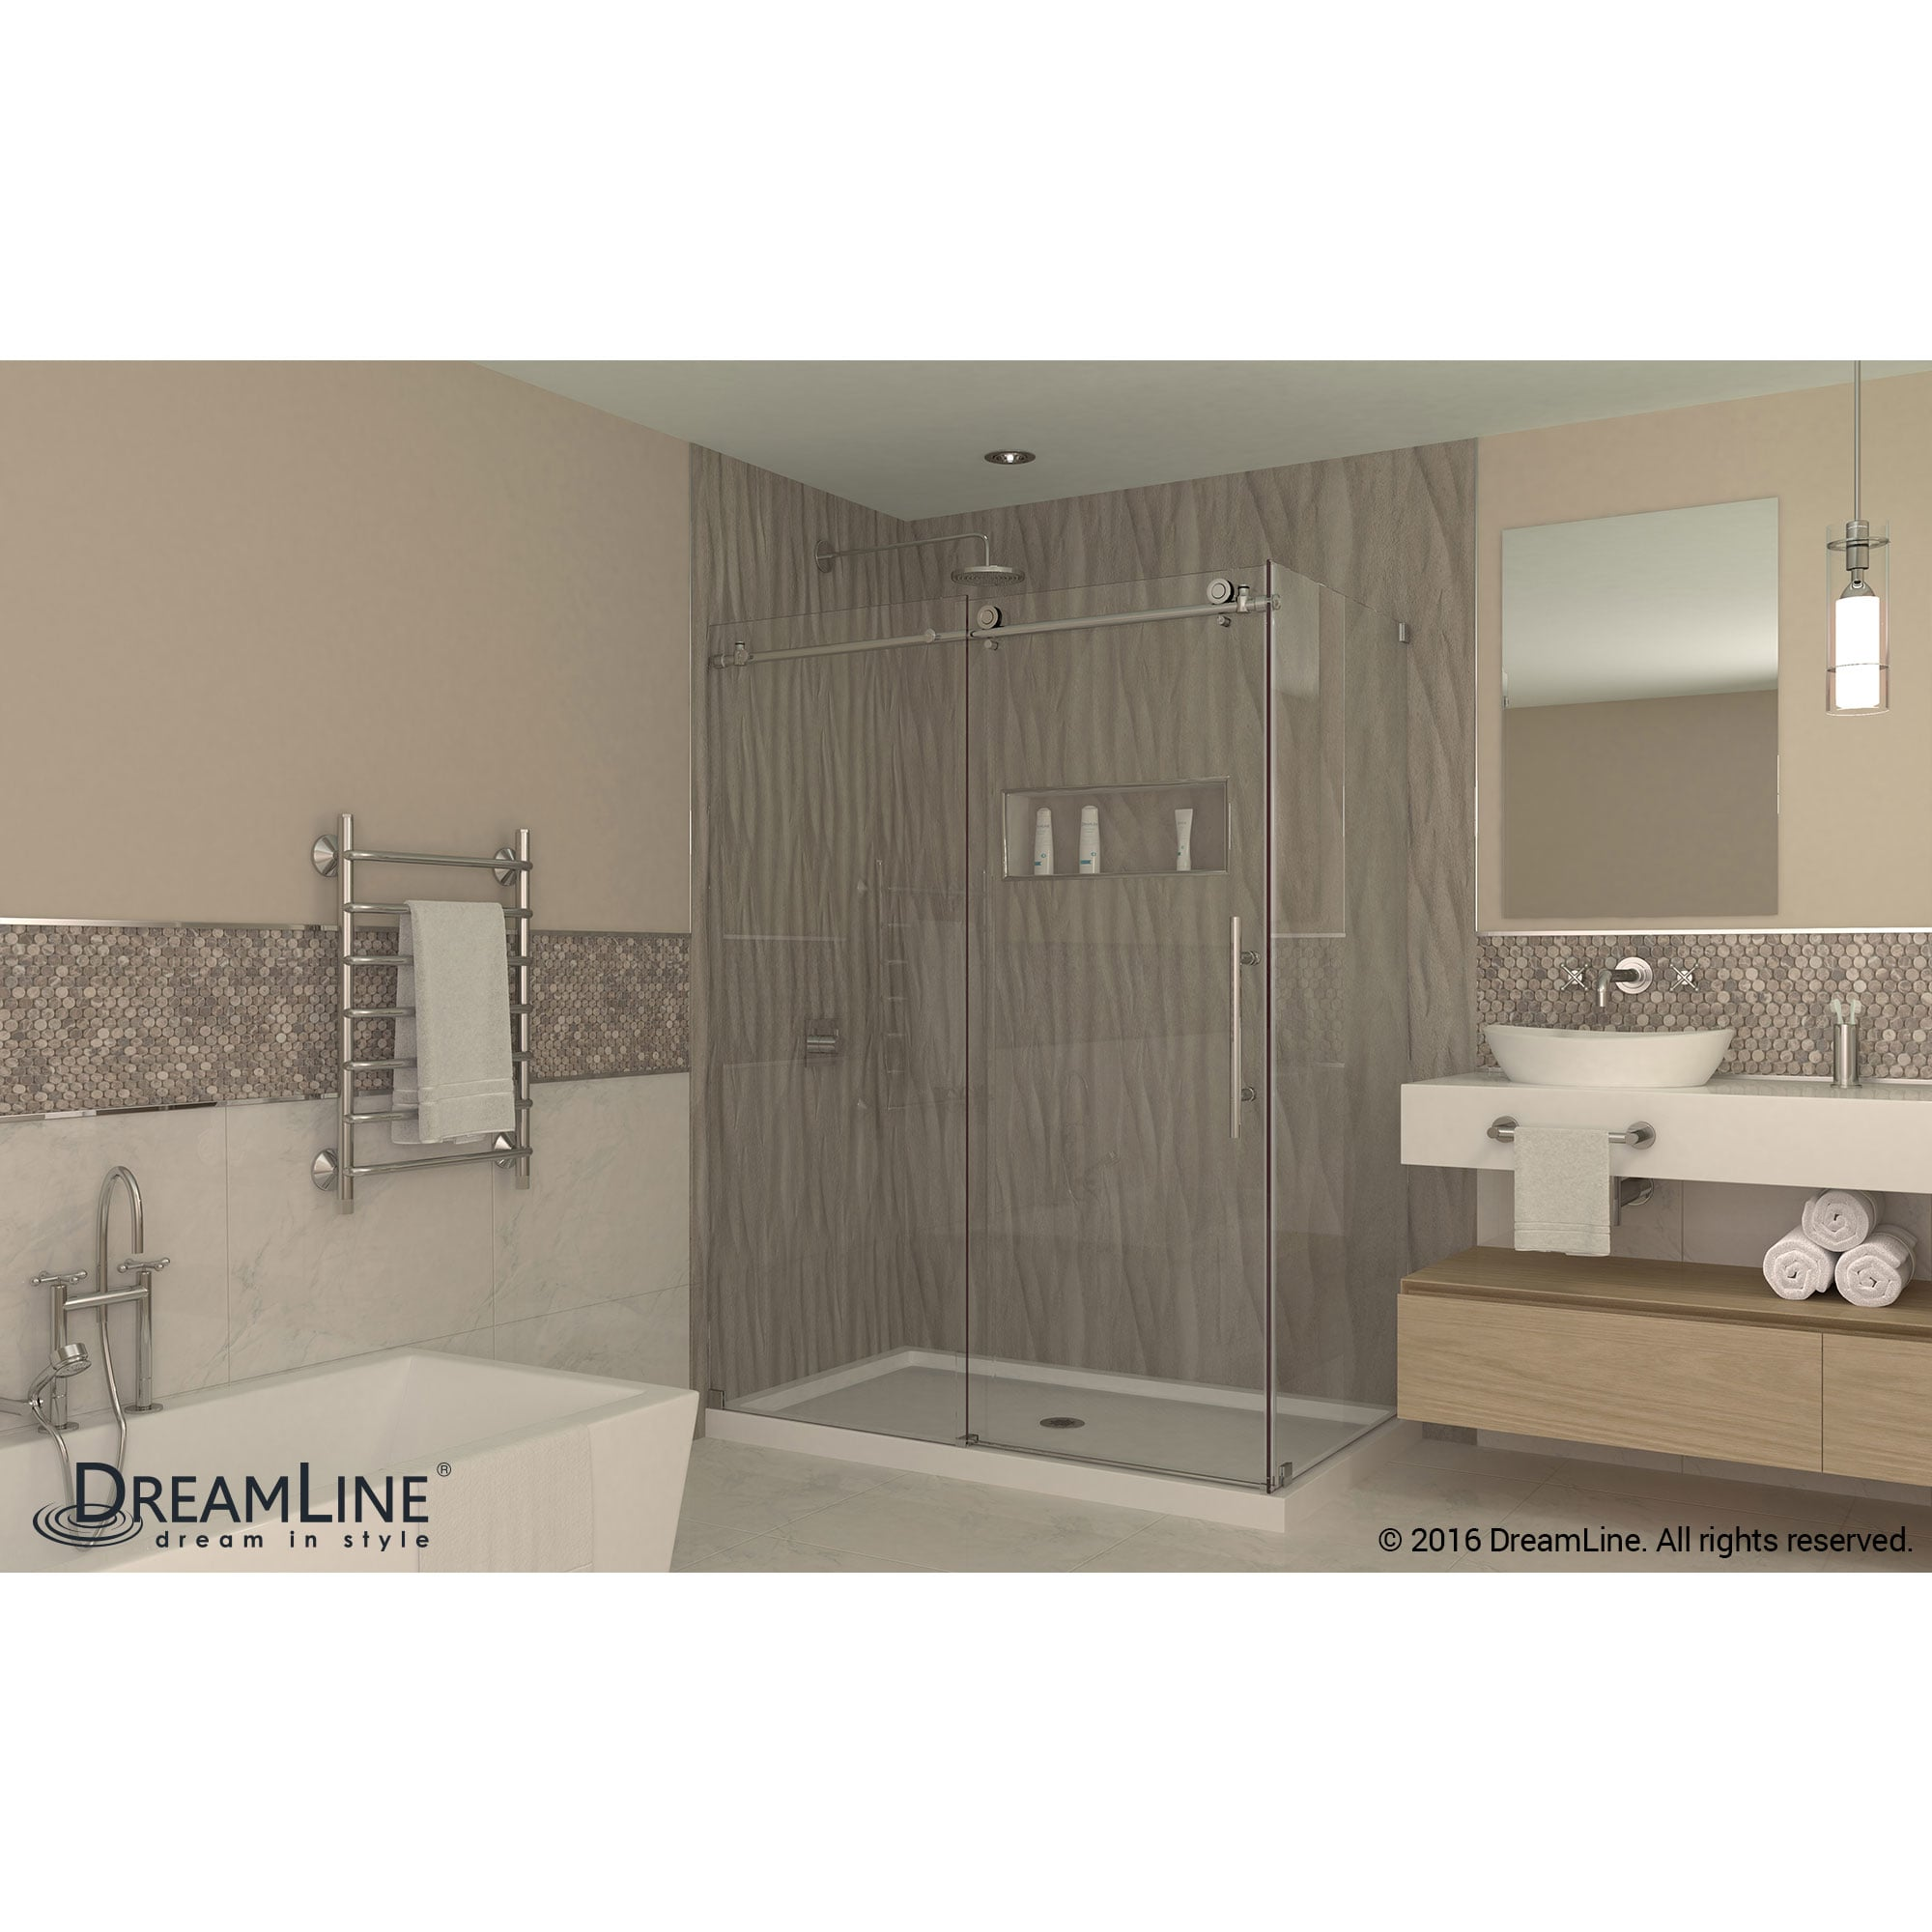 doors lowes size number sophisticated inspirations manuals photos from of sofa dreamliner installation dreamline full enigma phone frameless shower